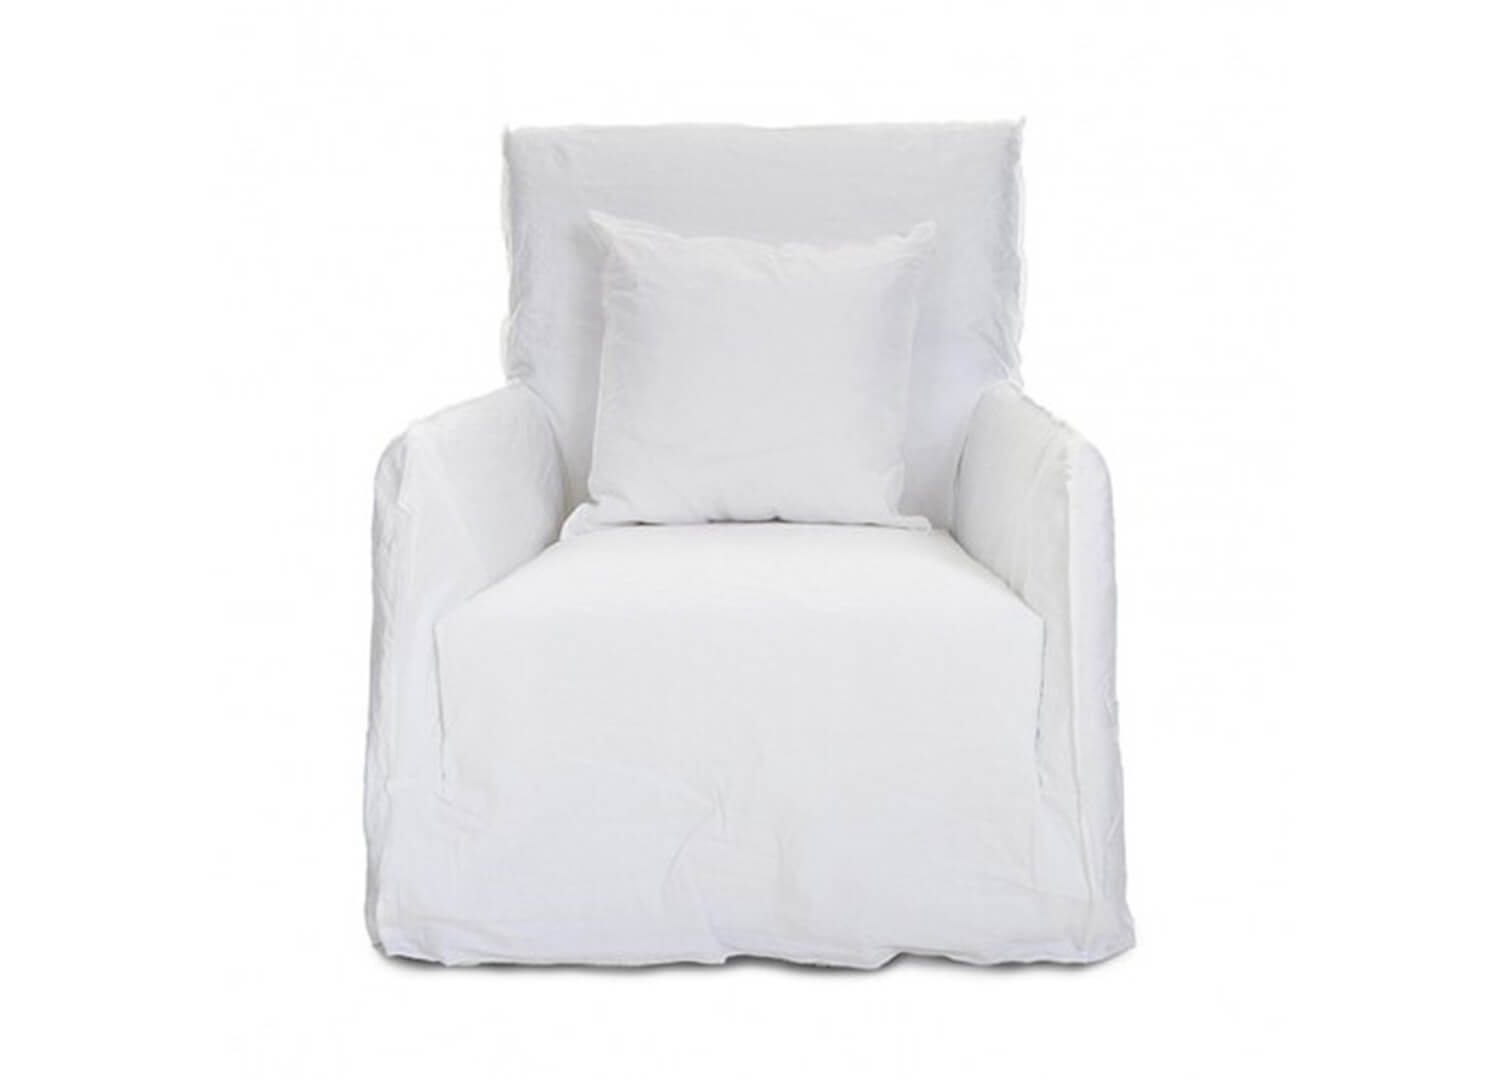 est living design directory ghost armchair